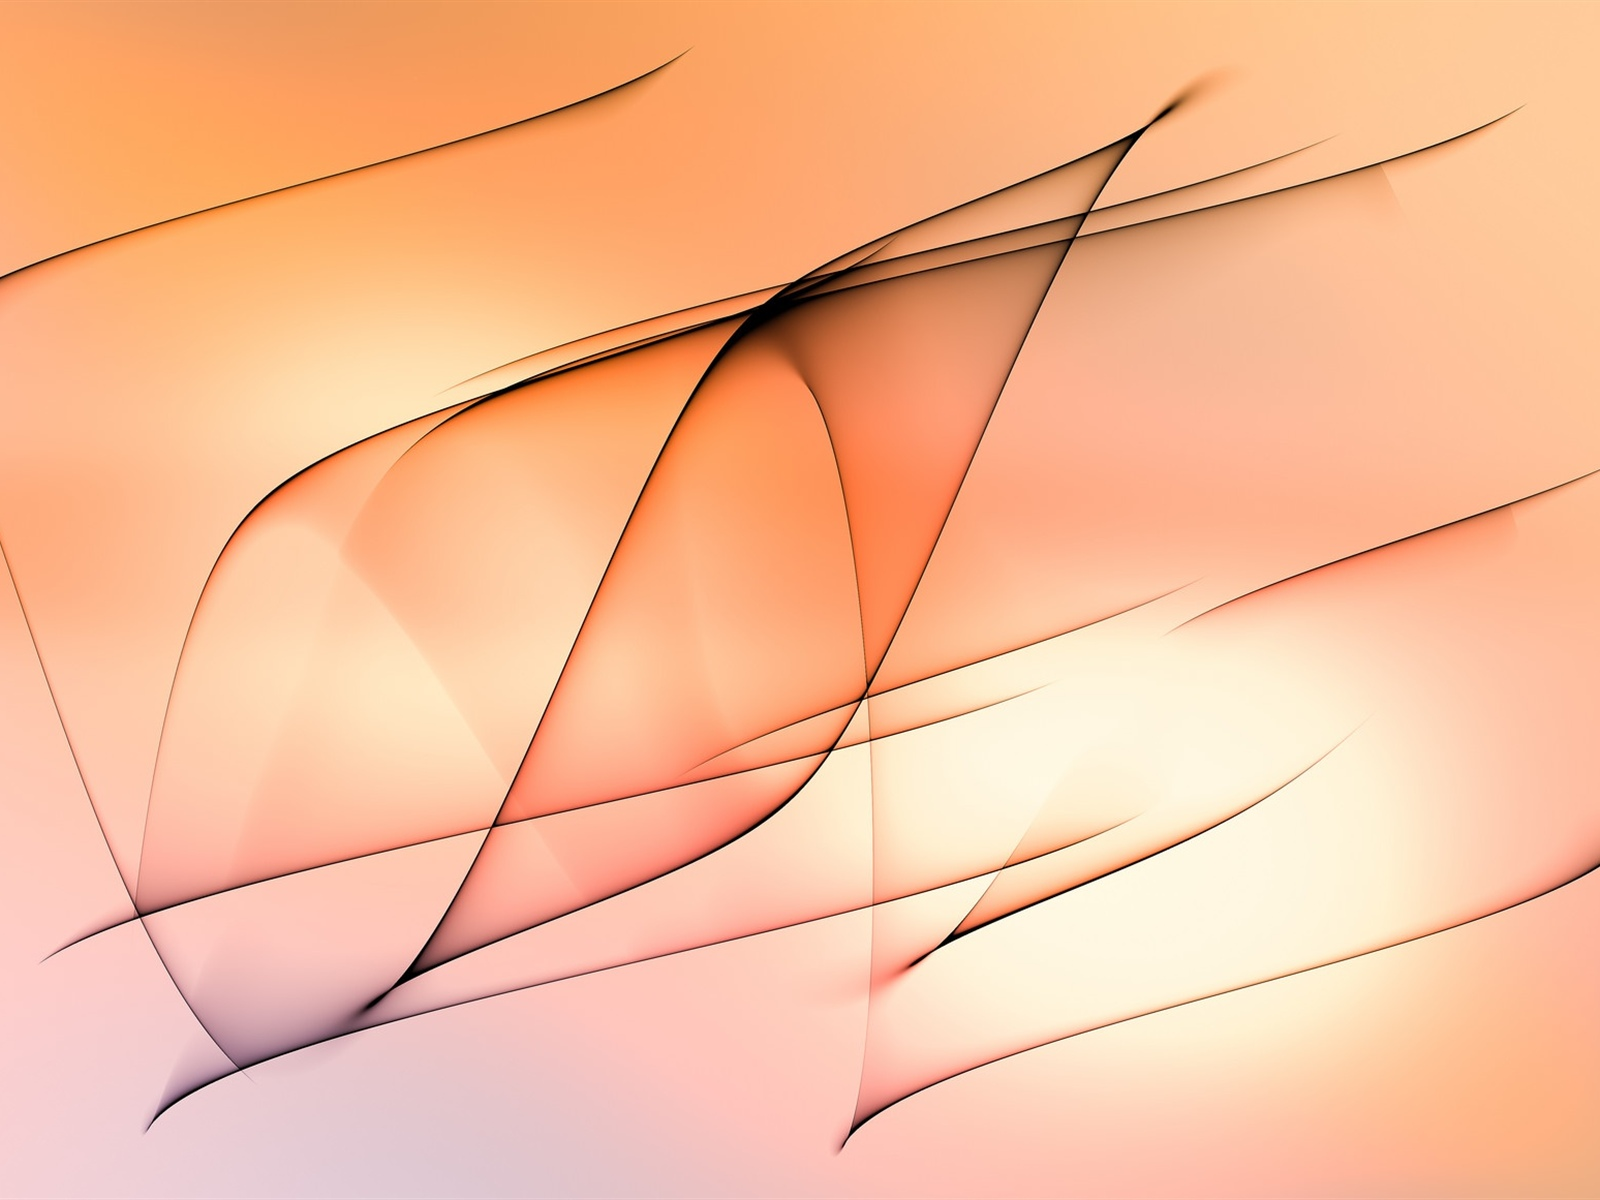 Abstract lines, orange background 1600x1200 wallpaper